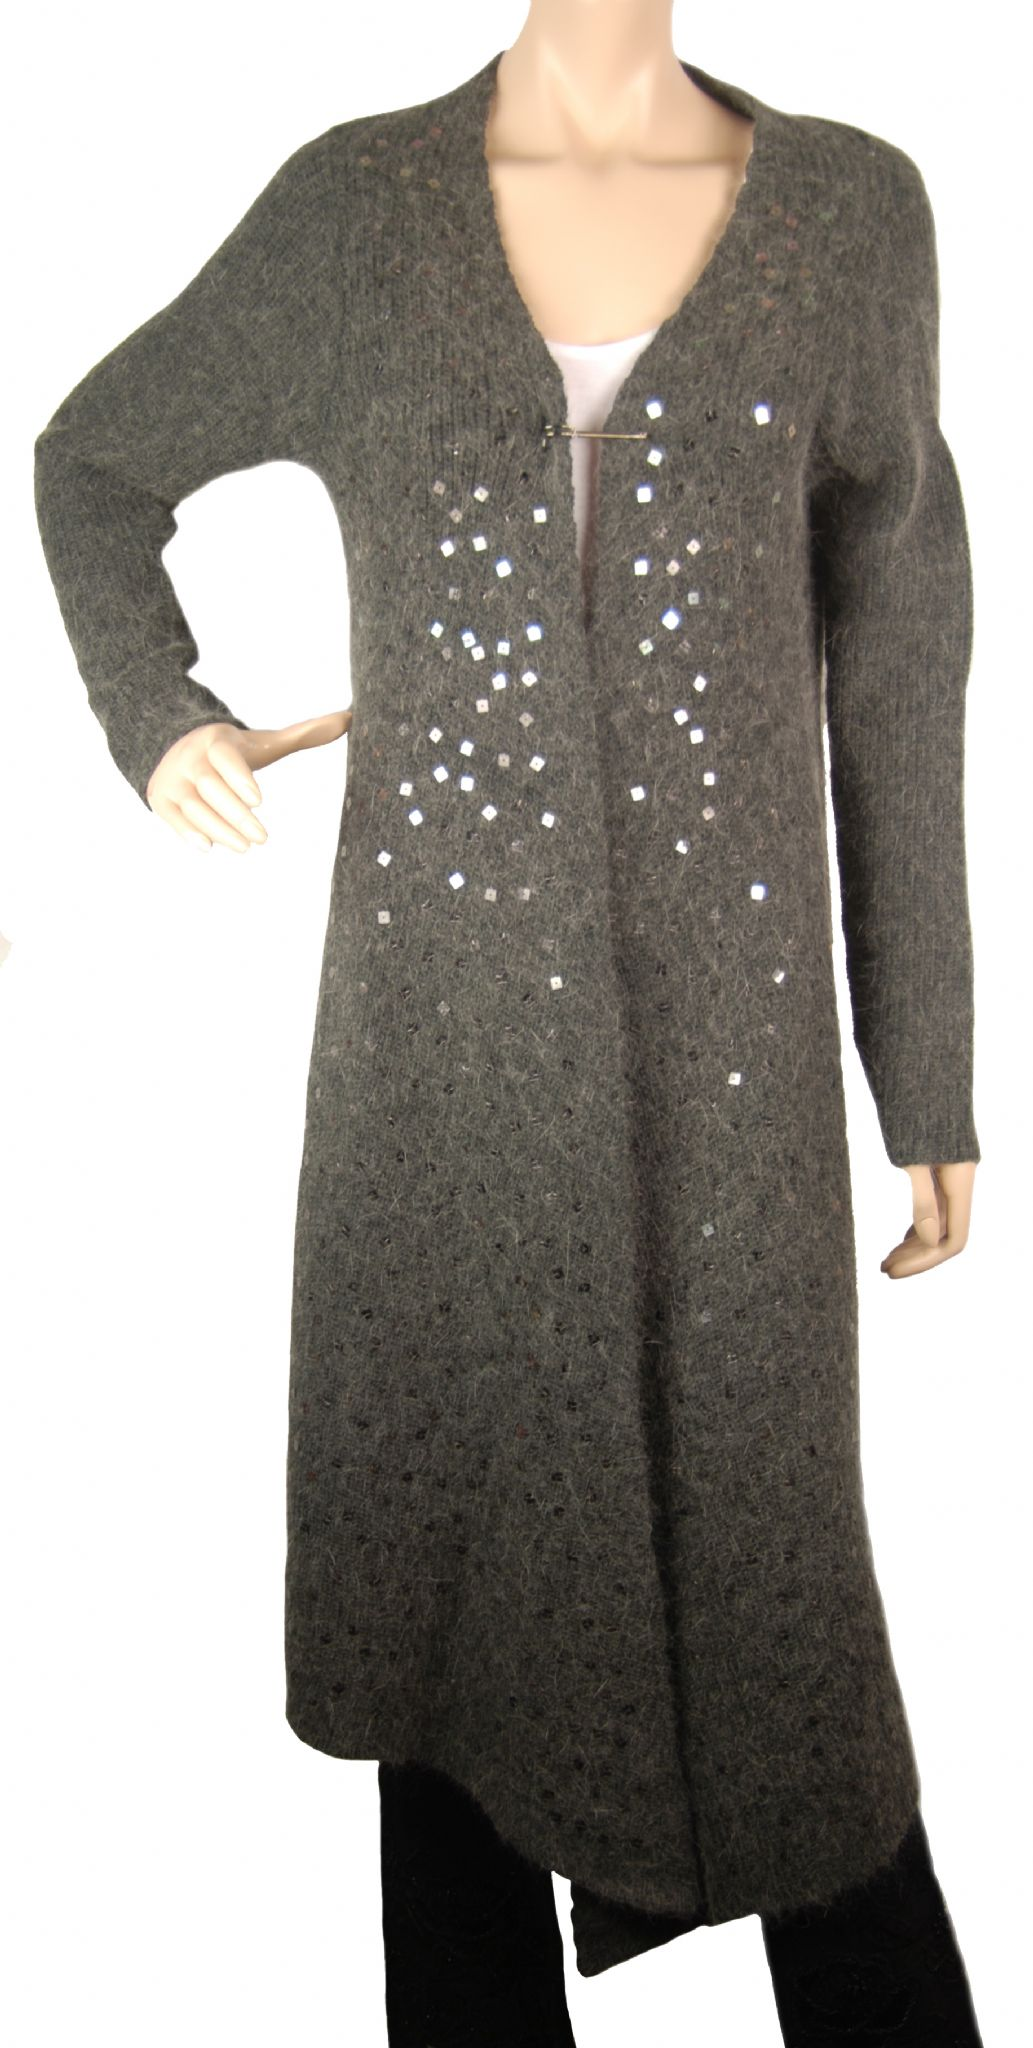 ConMiGo London CC120 Glamorous Long Dark Grey Angora Sequin ...